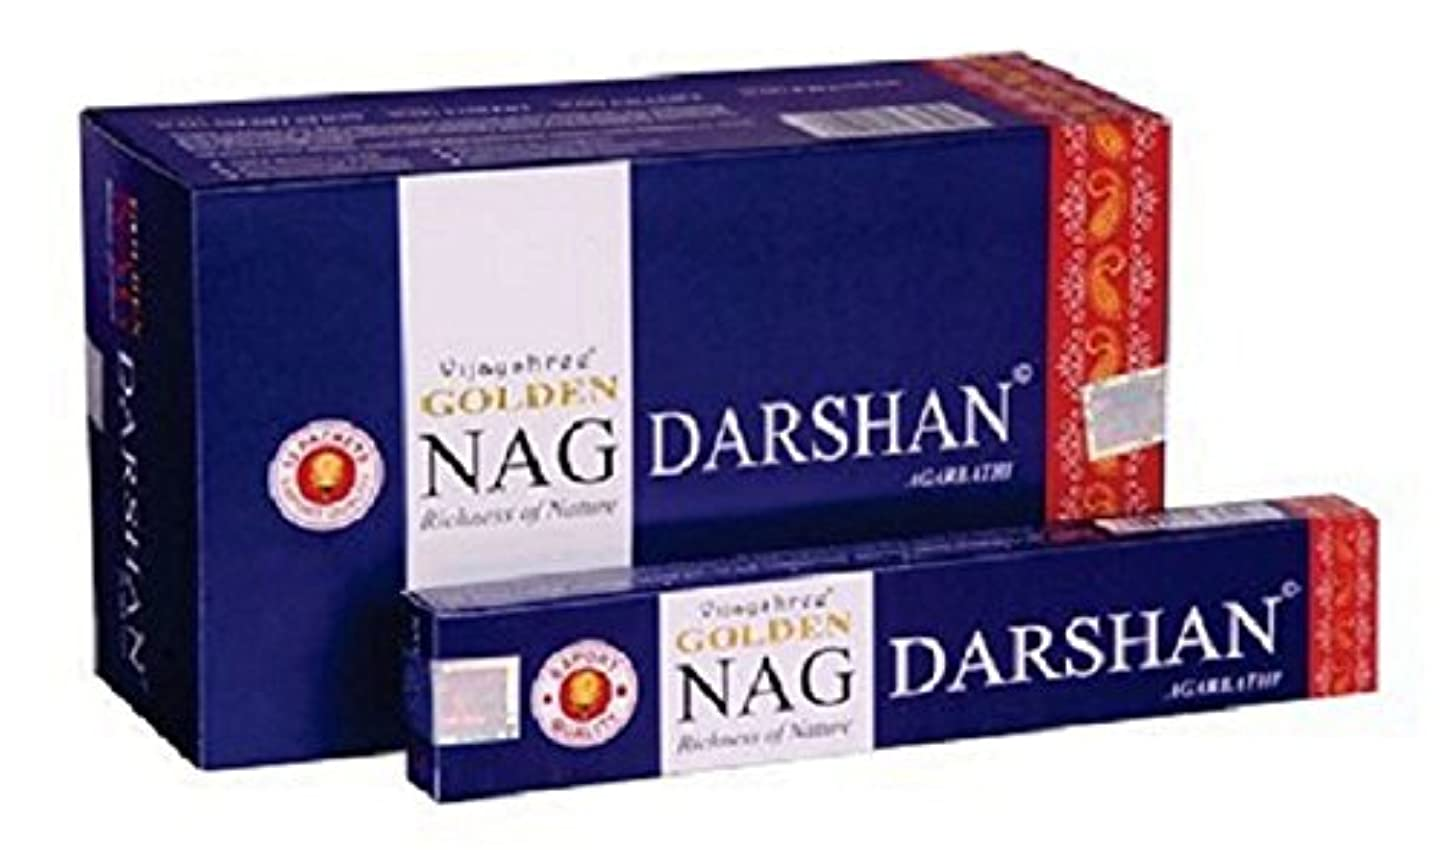 計画的納得させるバーVijayshree Golden Nag Darshan Incense Sticks 12 x 15 gms Agarbatti